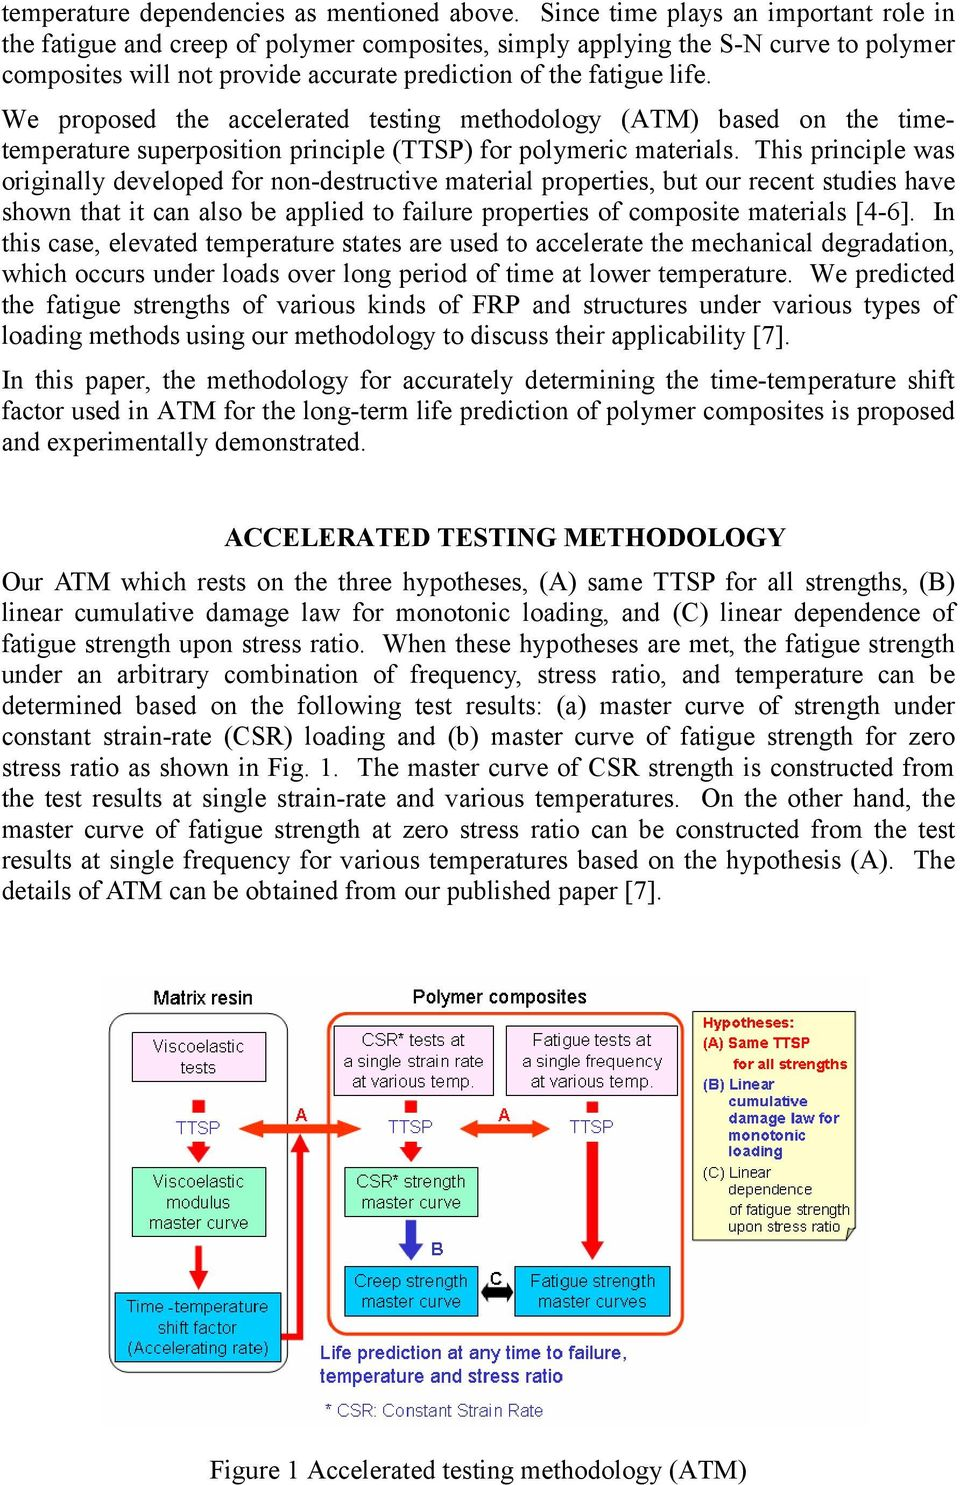 We proposed the accelerated testing methodology (ATM) based on the timetemperature superposition principle (TTSP) for polymeric materials.